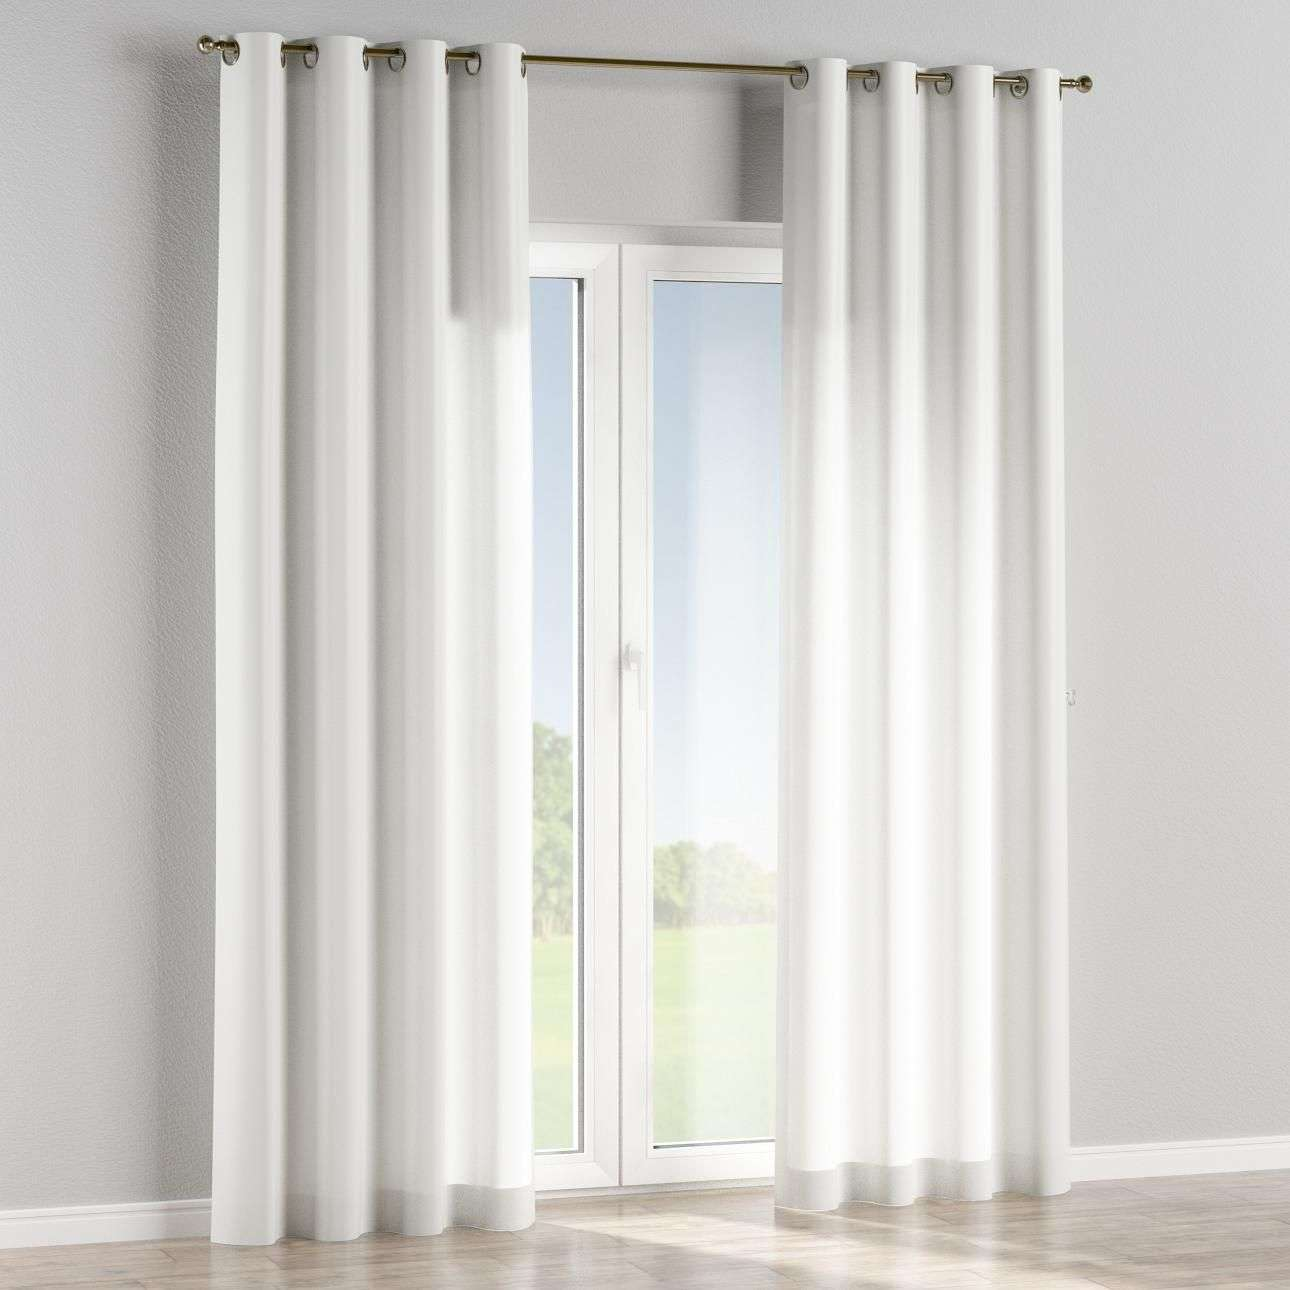 Eyelet lined curtains in collection Bristol, fabric: 125-25